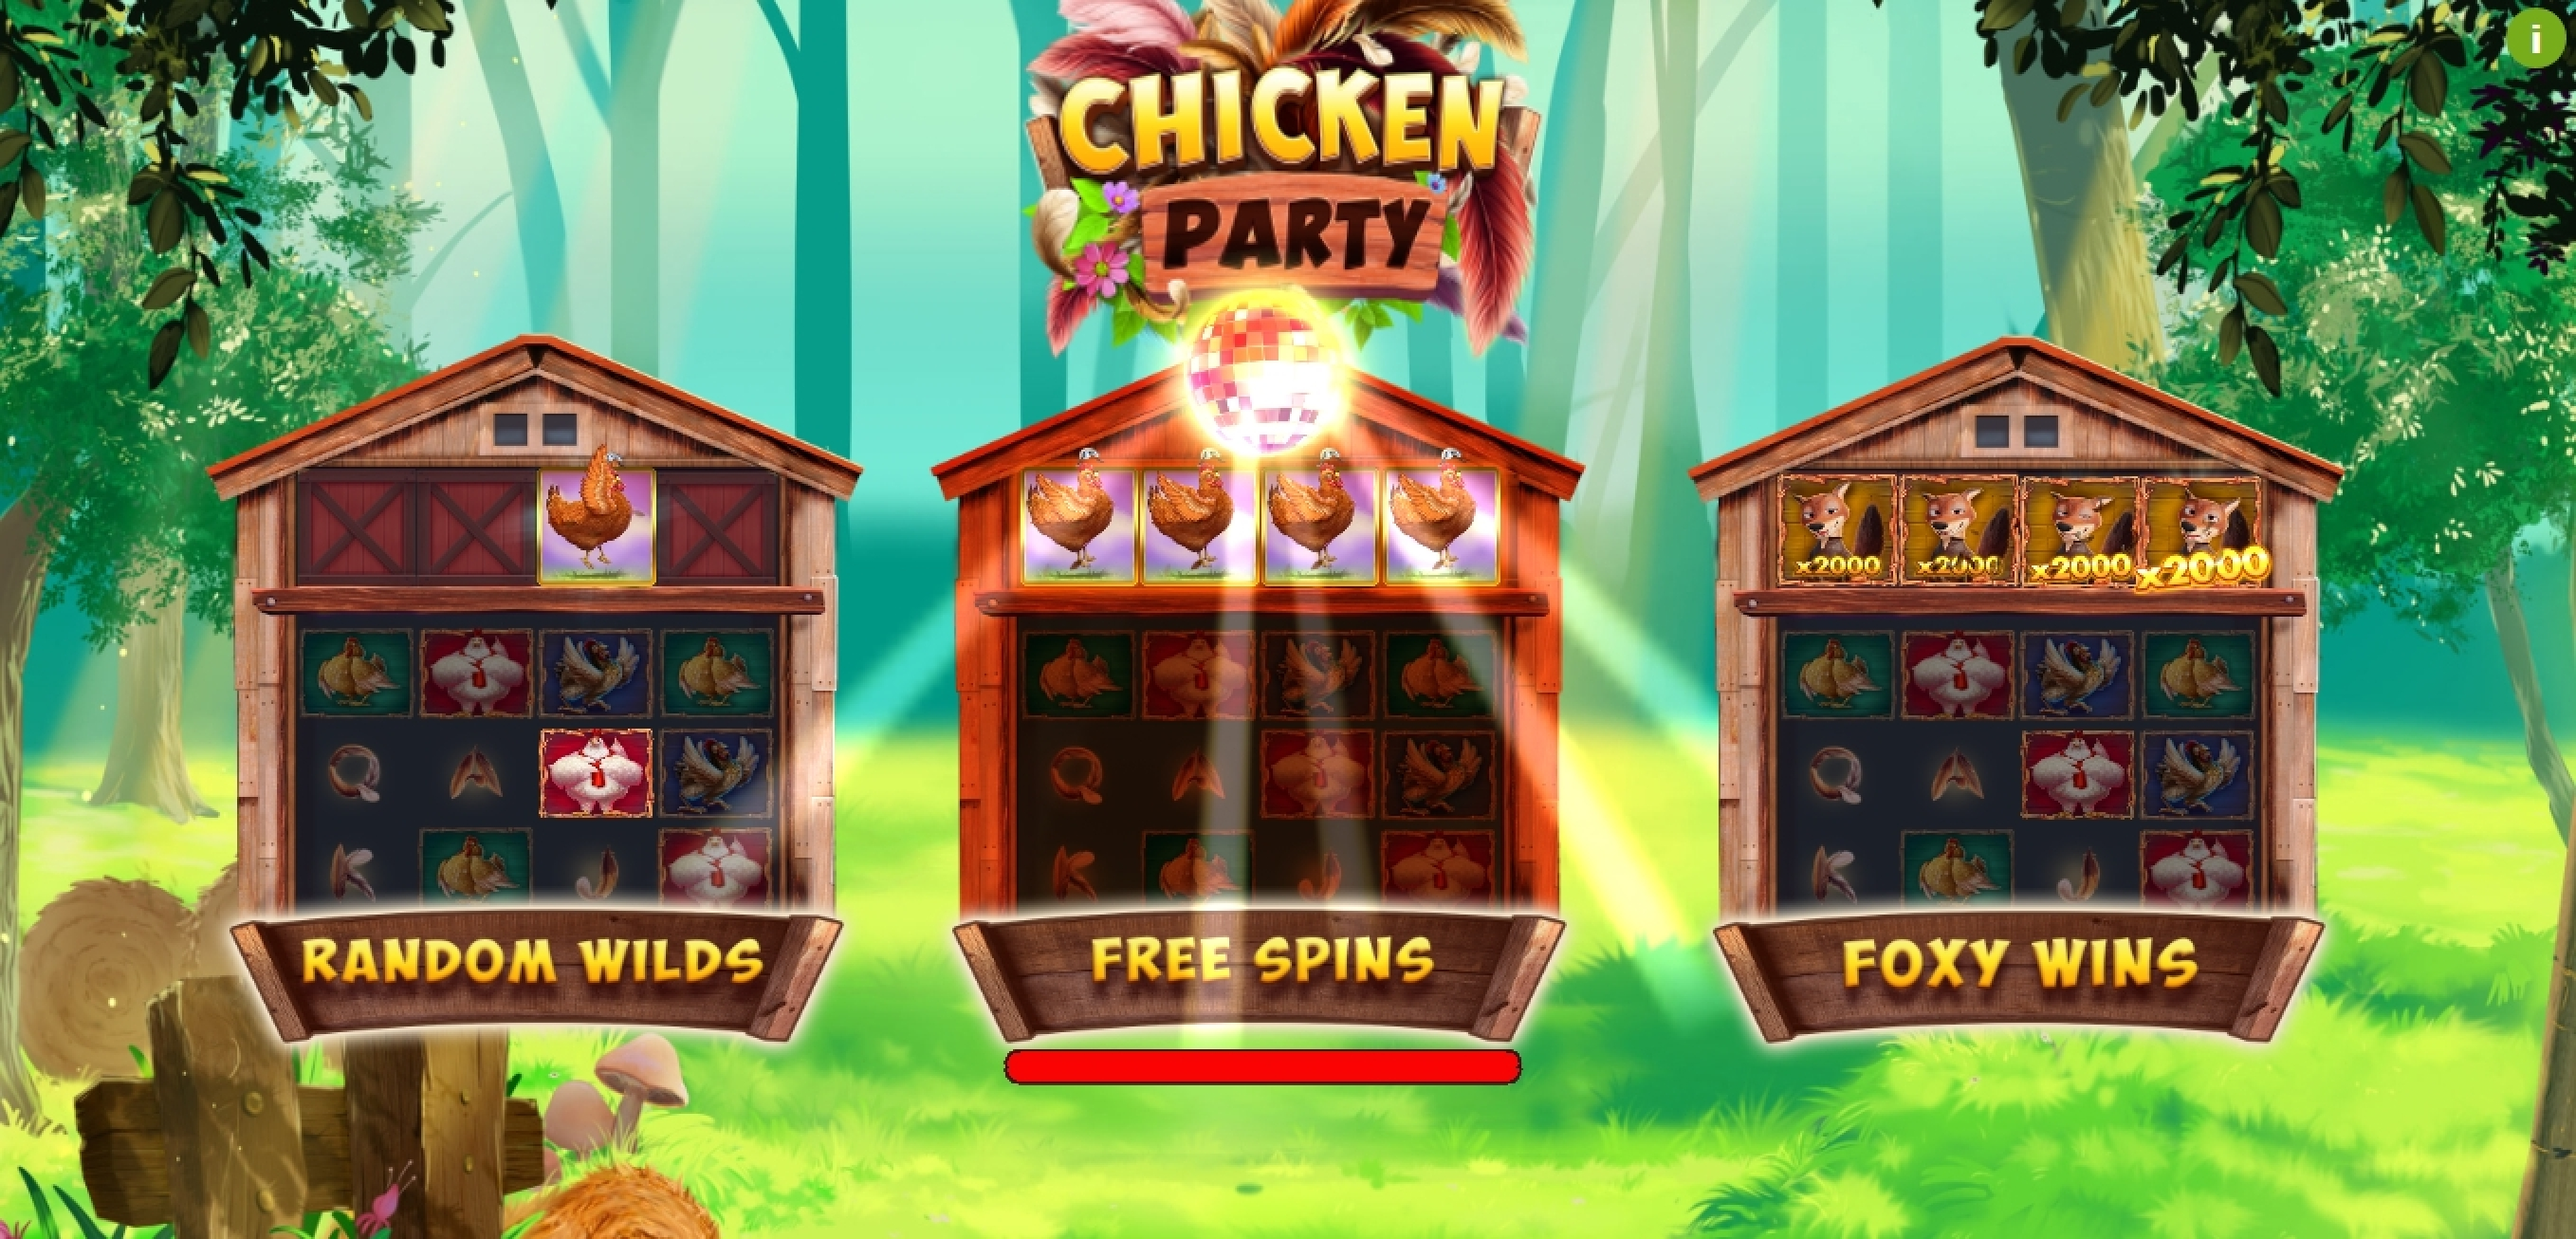 Play Chicken Party Free Casino Slot Game by Booming Games